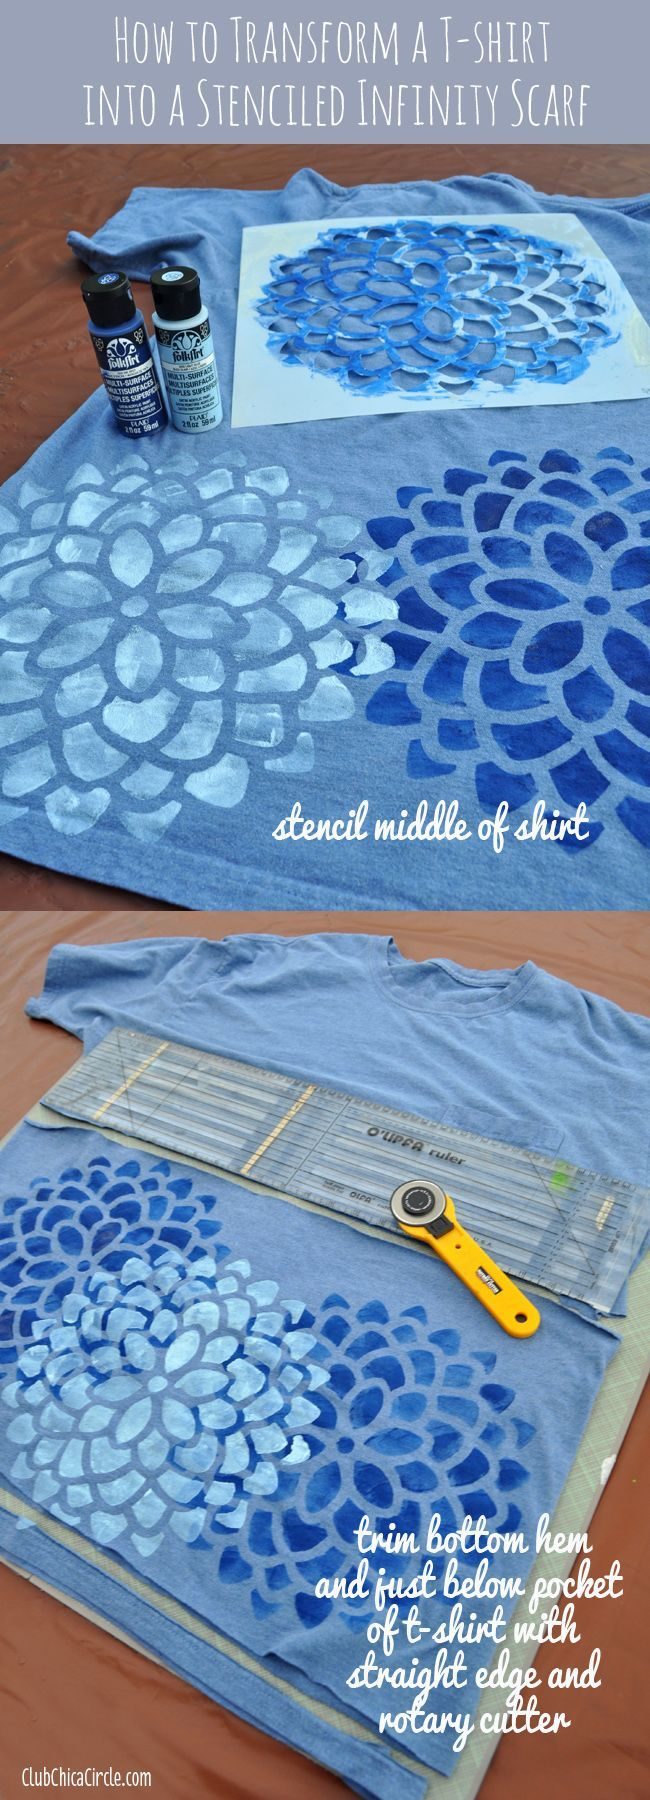 Did you know you can make one from a t-shirt, and make it a one-of-a-kind accessory with Stencil1 stencils and Plaid Crafts FolkArt Multi-Surface paints?   club.chicacircle....  #ad #Stencil1